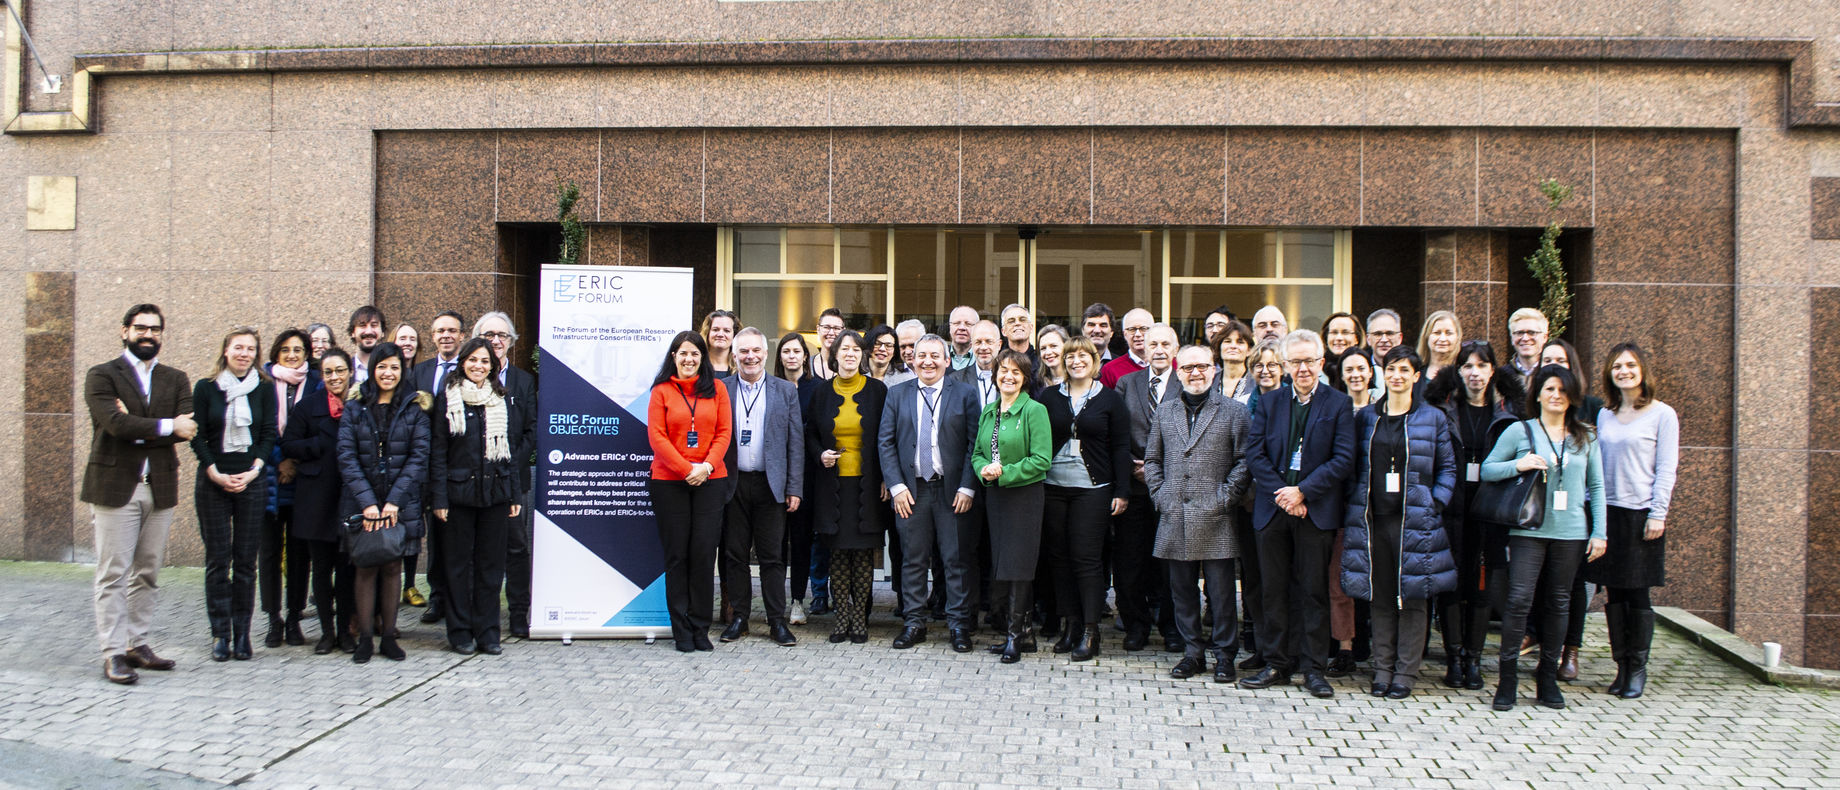 Group photo from the ERIC Forum meeting held in Brussels.